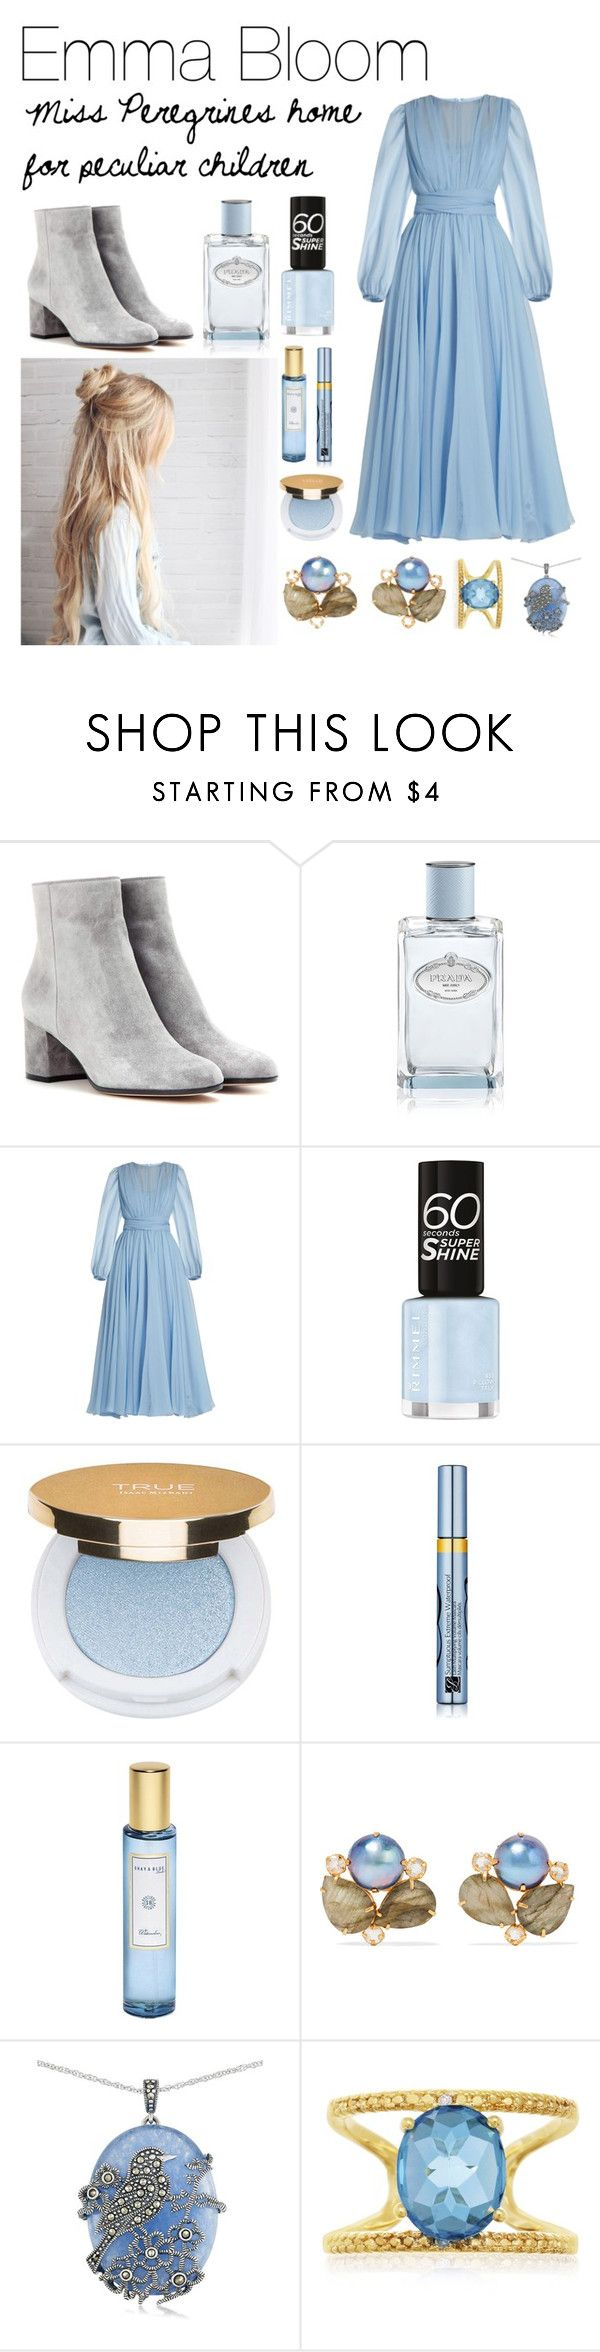 """n #20"" by nannaschjoedt on Polyvore featuring Gianvito Rossi, Prada, Dolce&Gabbana, TRUE Isaac Mizrahi, Estée Lauder, Shay & Blue, Bounkit and Lord & Taylor"